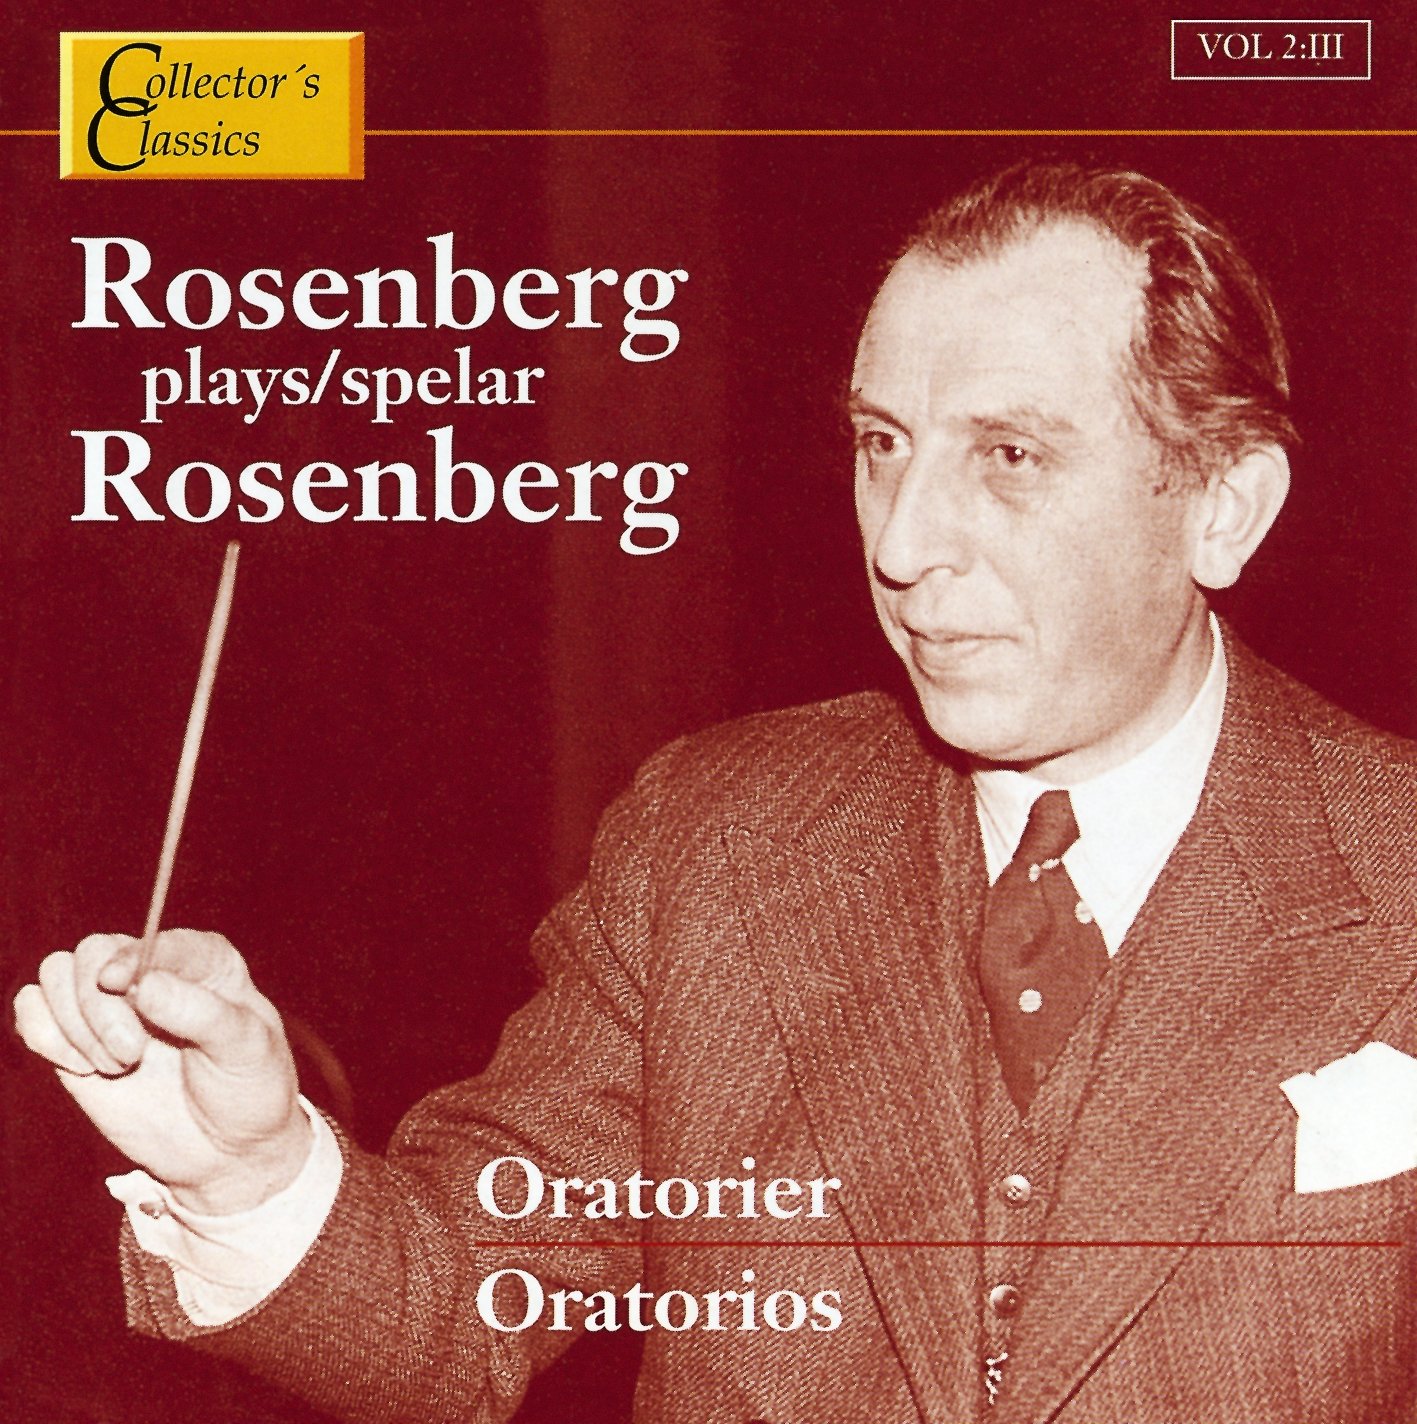 Rosenberg Vol 2:II The Oratorios CC